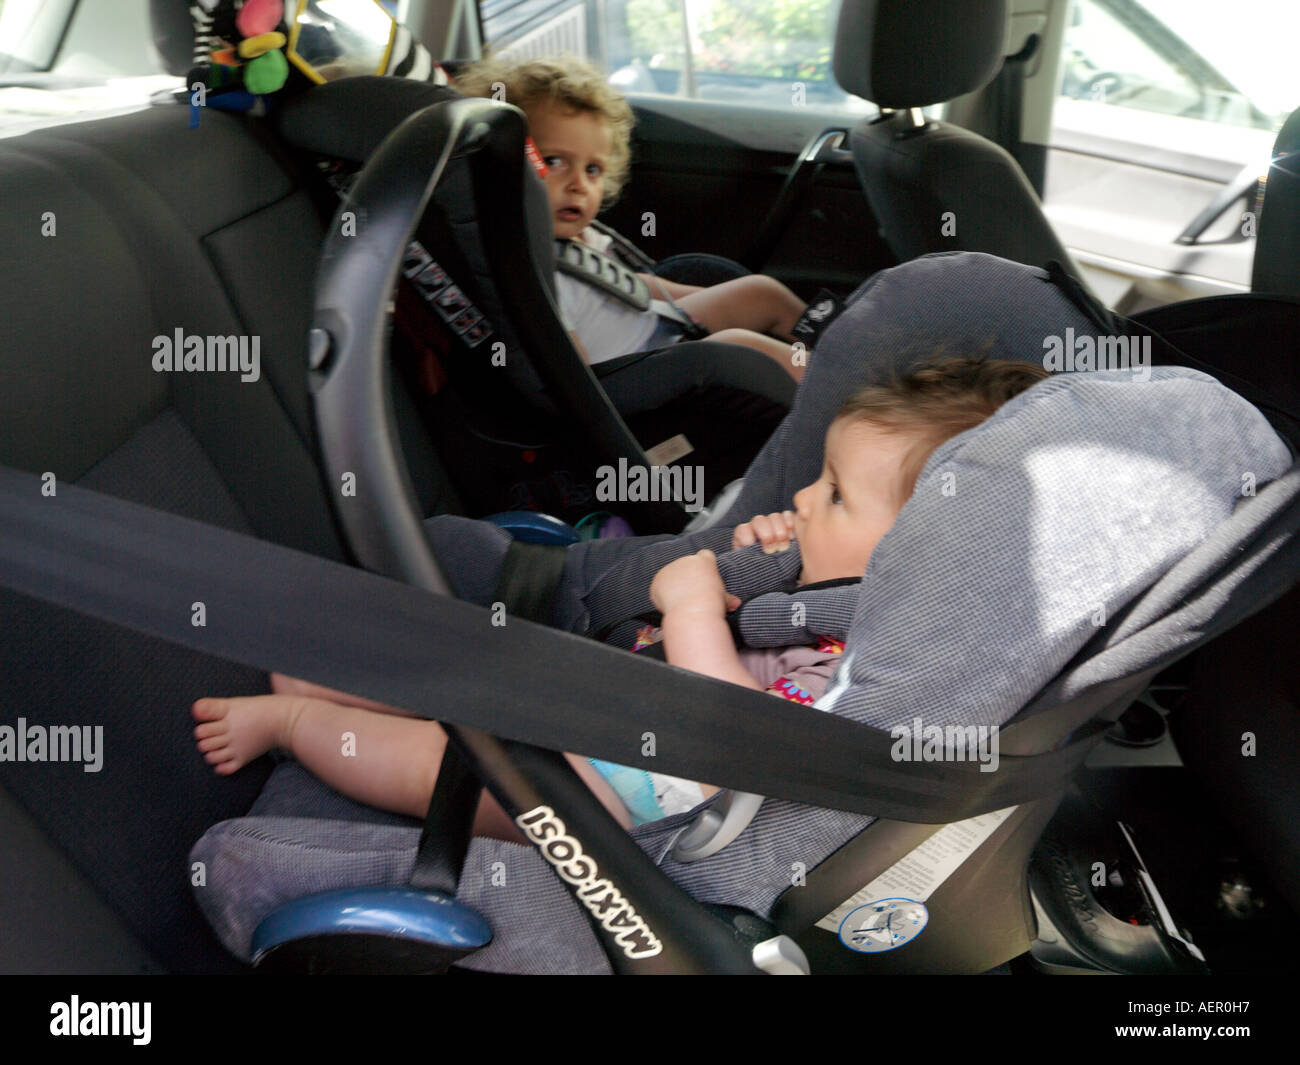 Children in Forward and Rear Facing Car Seats in Back of Car Stock